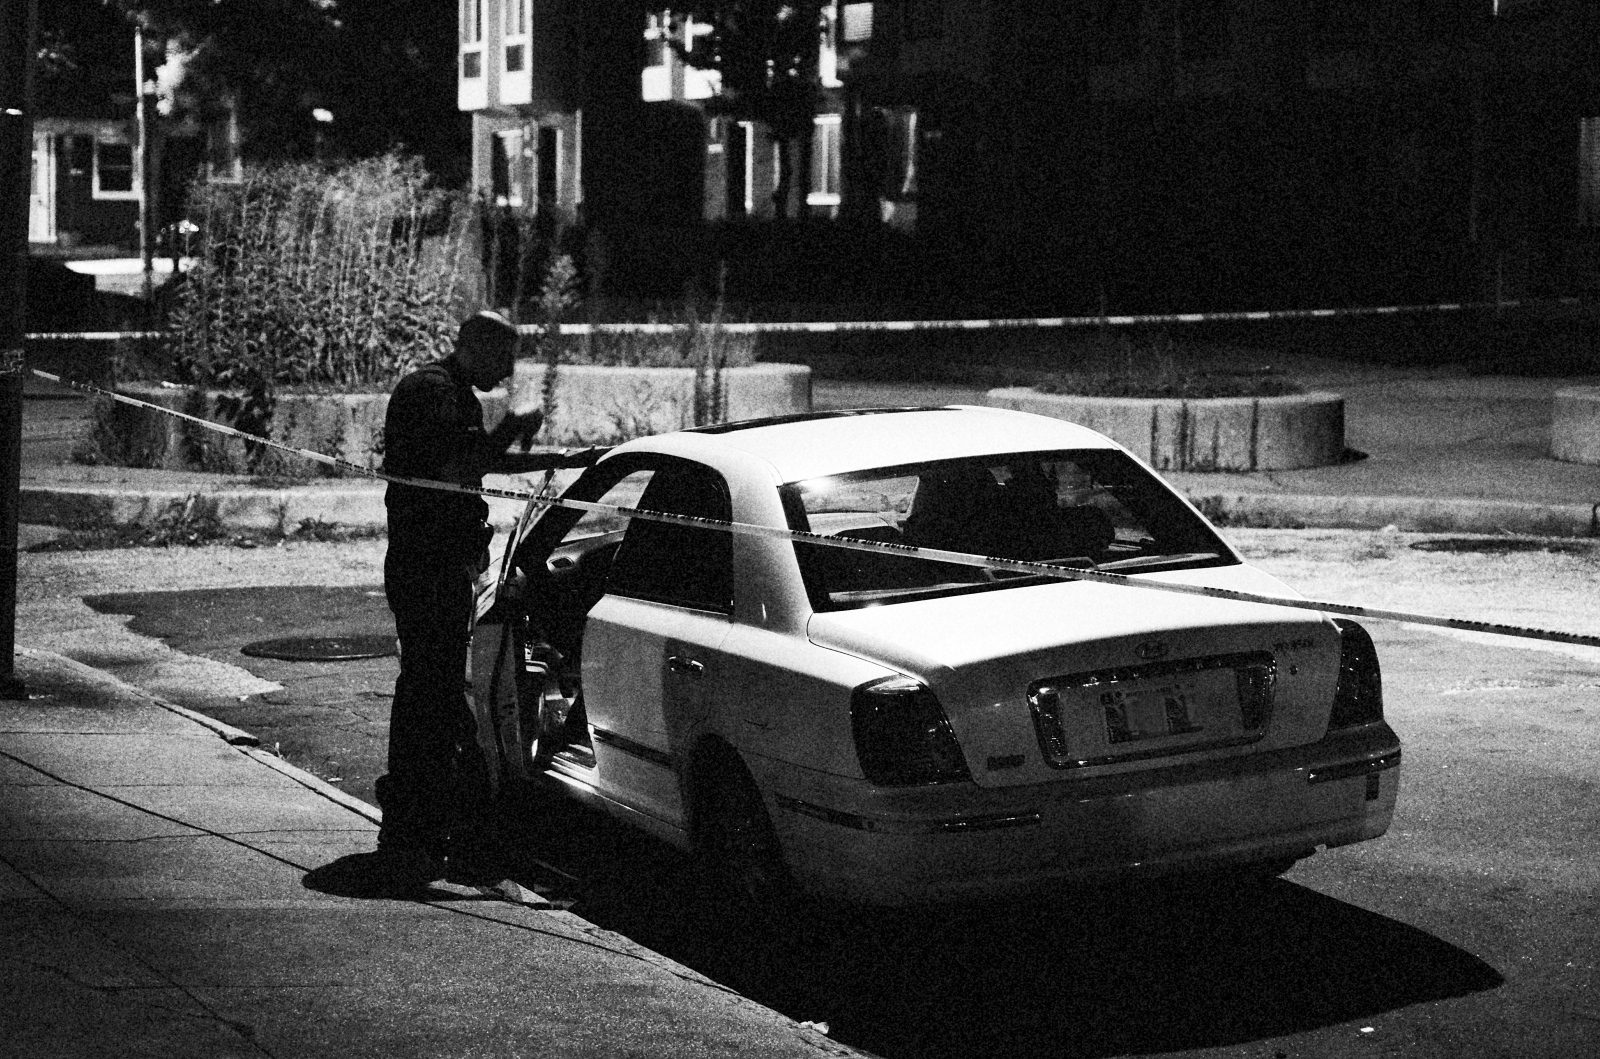 A police officer examines a car involved in a late night shooting in the 1400 block of Ashland Avenue on July 28, 2013.